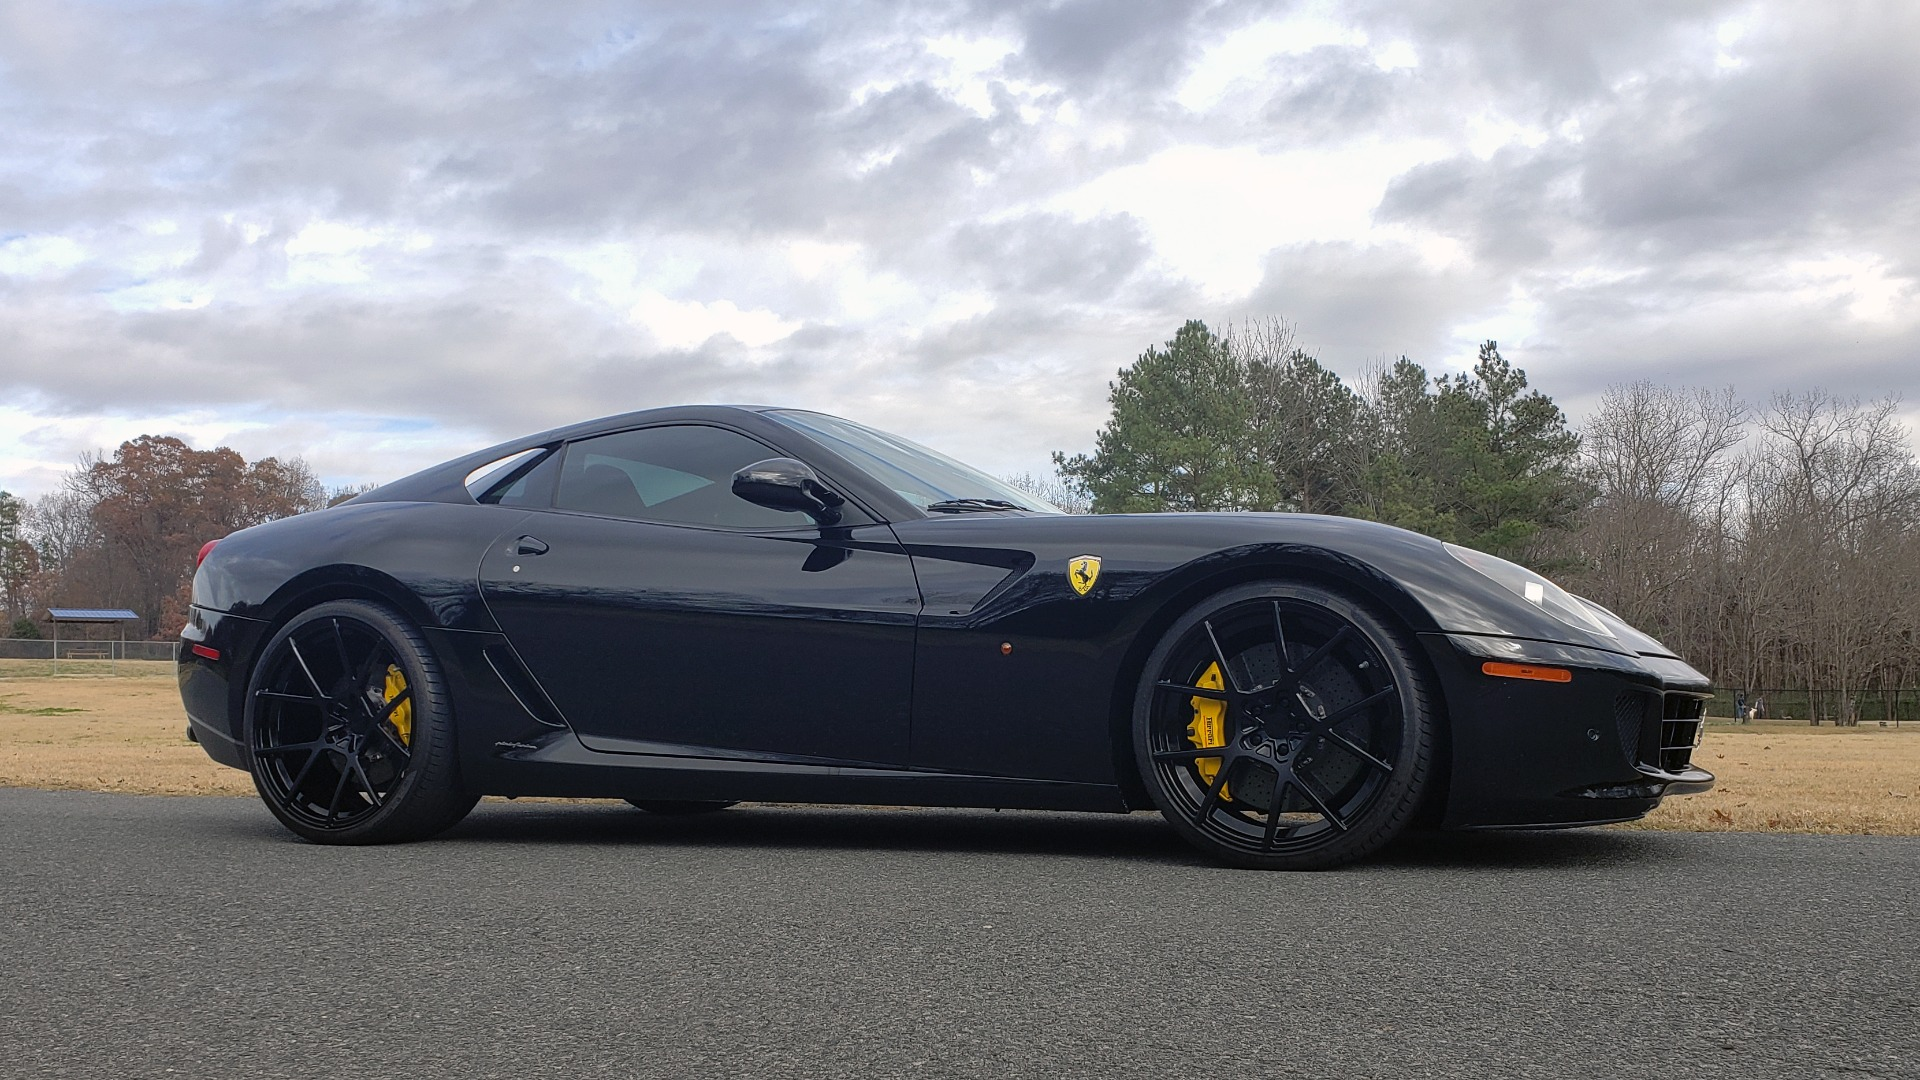 Used 2007 Ferrari 599 GTB FIORANO HGTE / V12 / F1 TRANS / NAV / BOSE / CUSTOM WHEELS for sale Sold at Formula Imports in Charlotte NC 28227 10